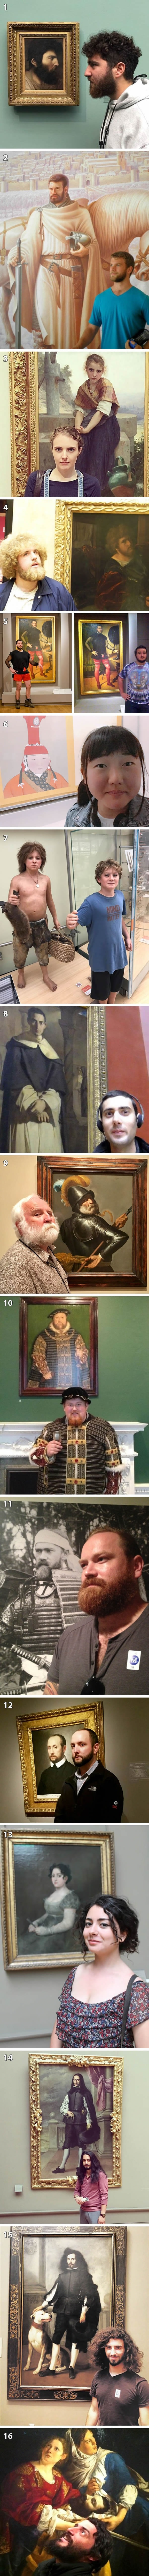 People who find their ancient statue twin in museum